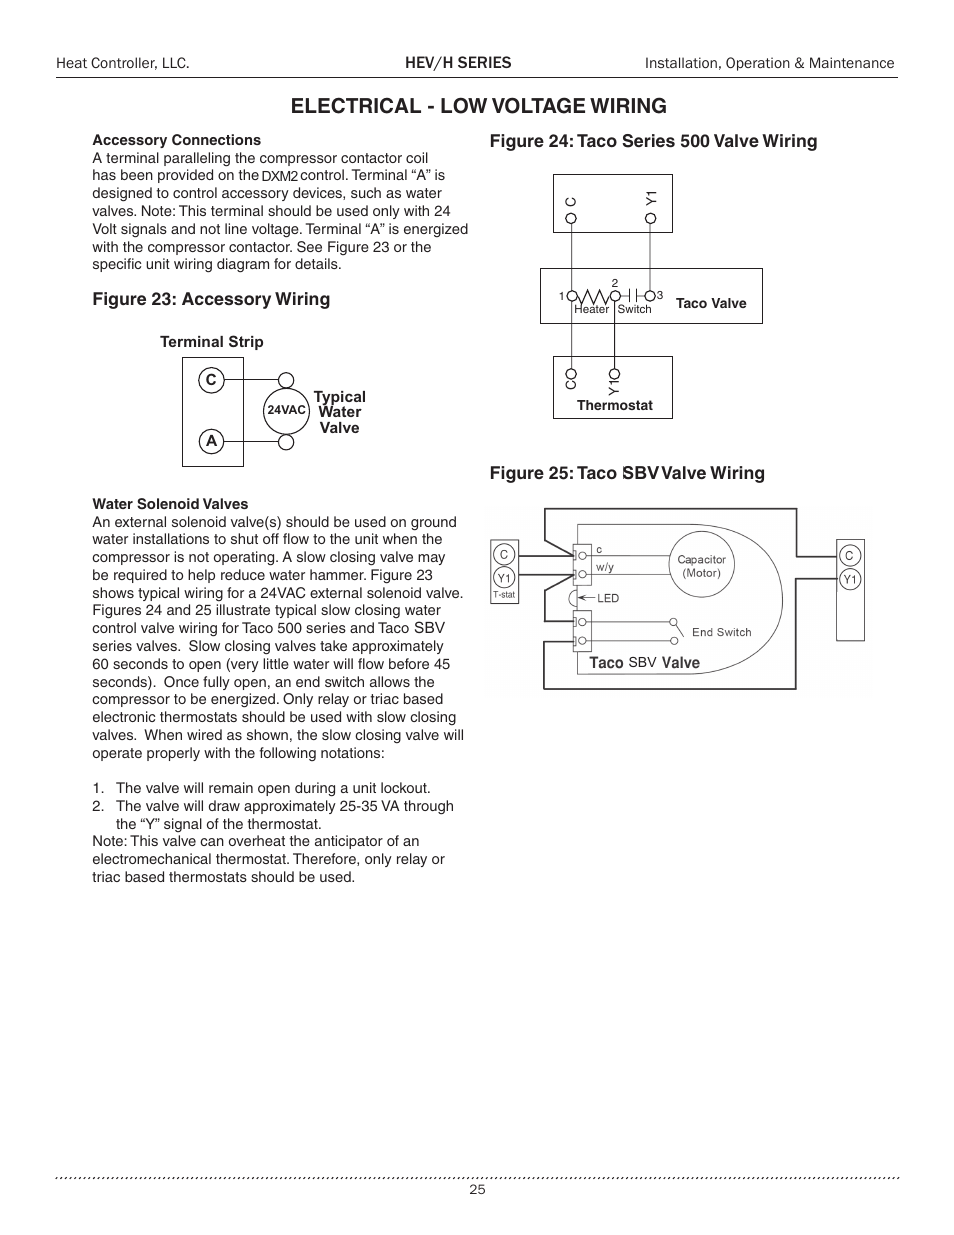 electrical - low voltage wiring | comfort-aire heh series 2 to 5 tons user  manual | page 25 / 46